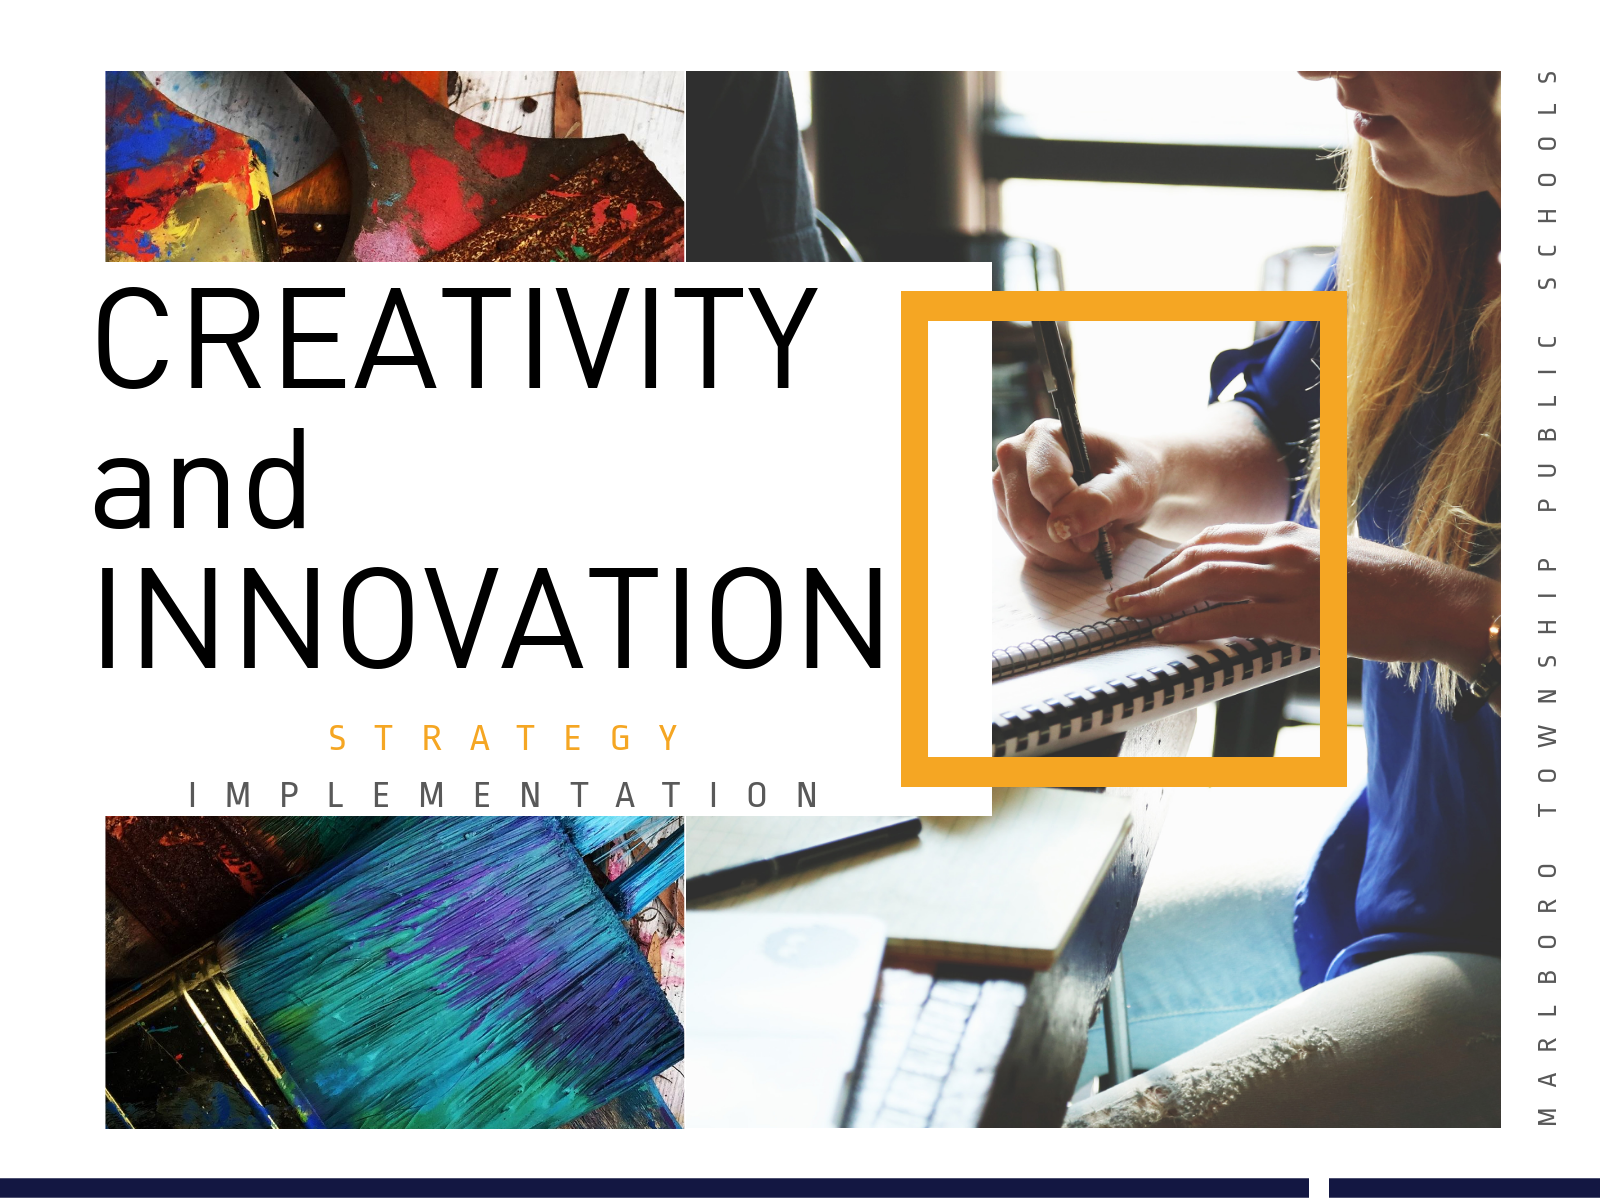 Creativity & Innovation title page. Paint and technology.